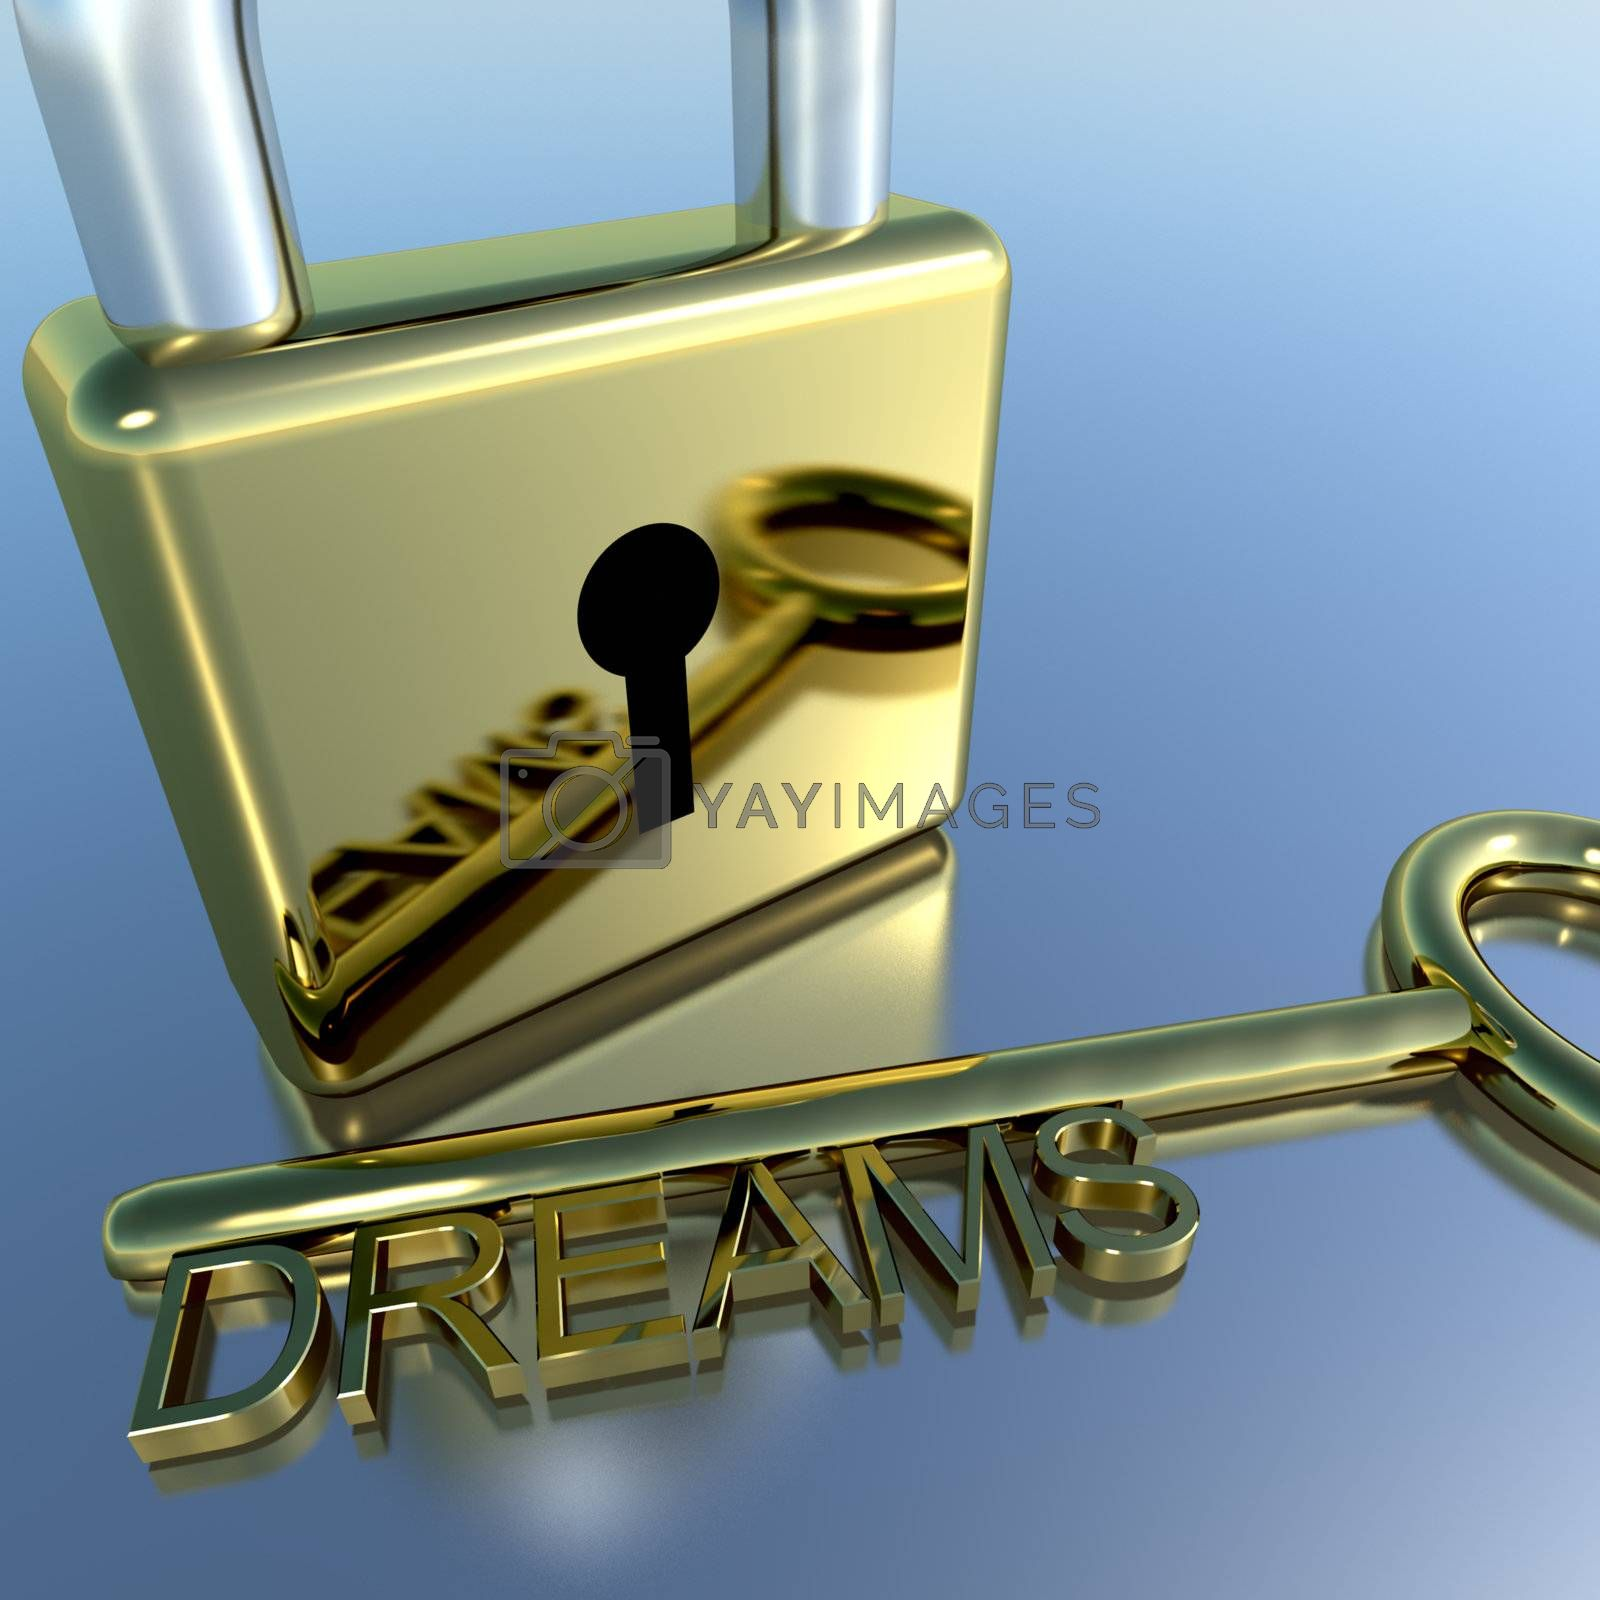 Padlock With Dreams Key Showing Wishes Hopes And Future